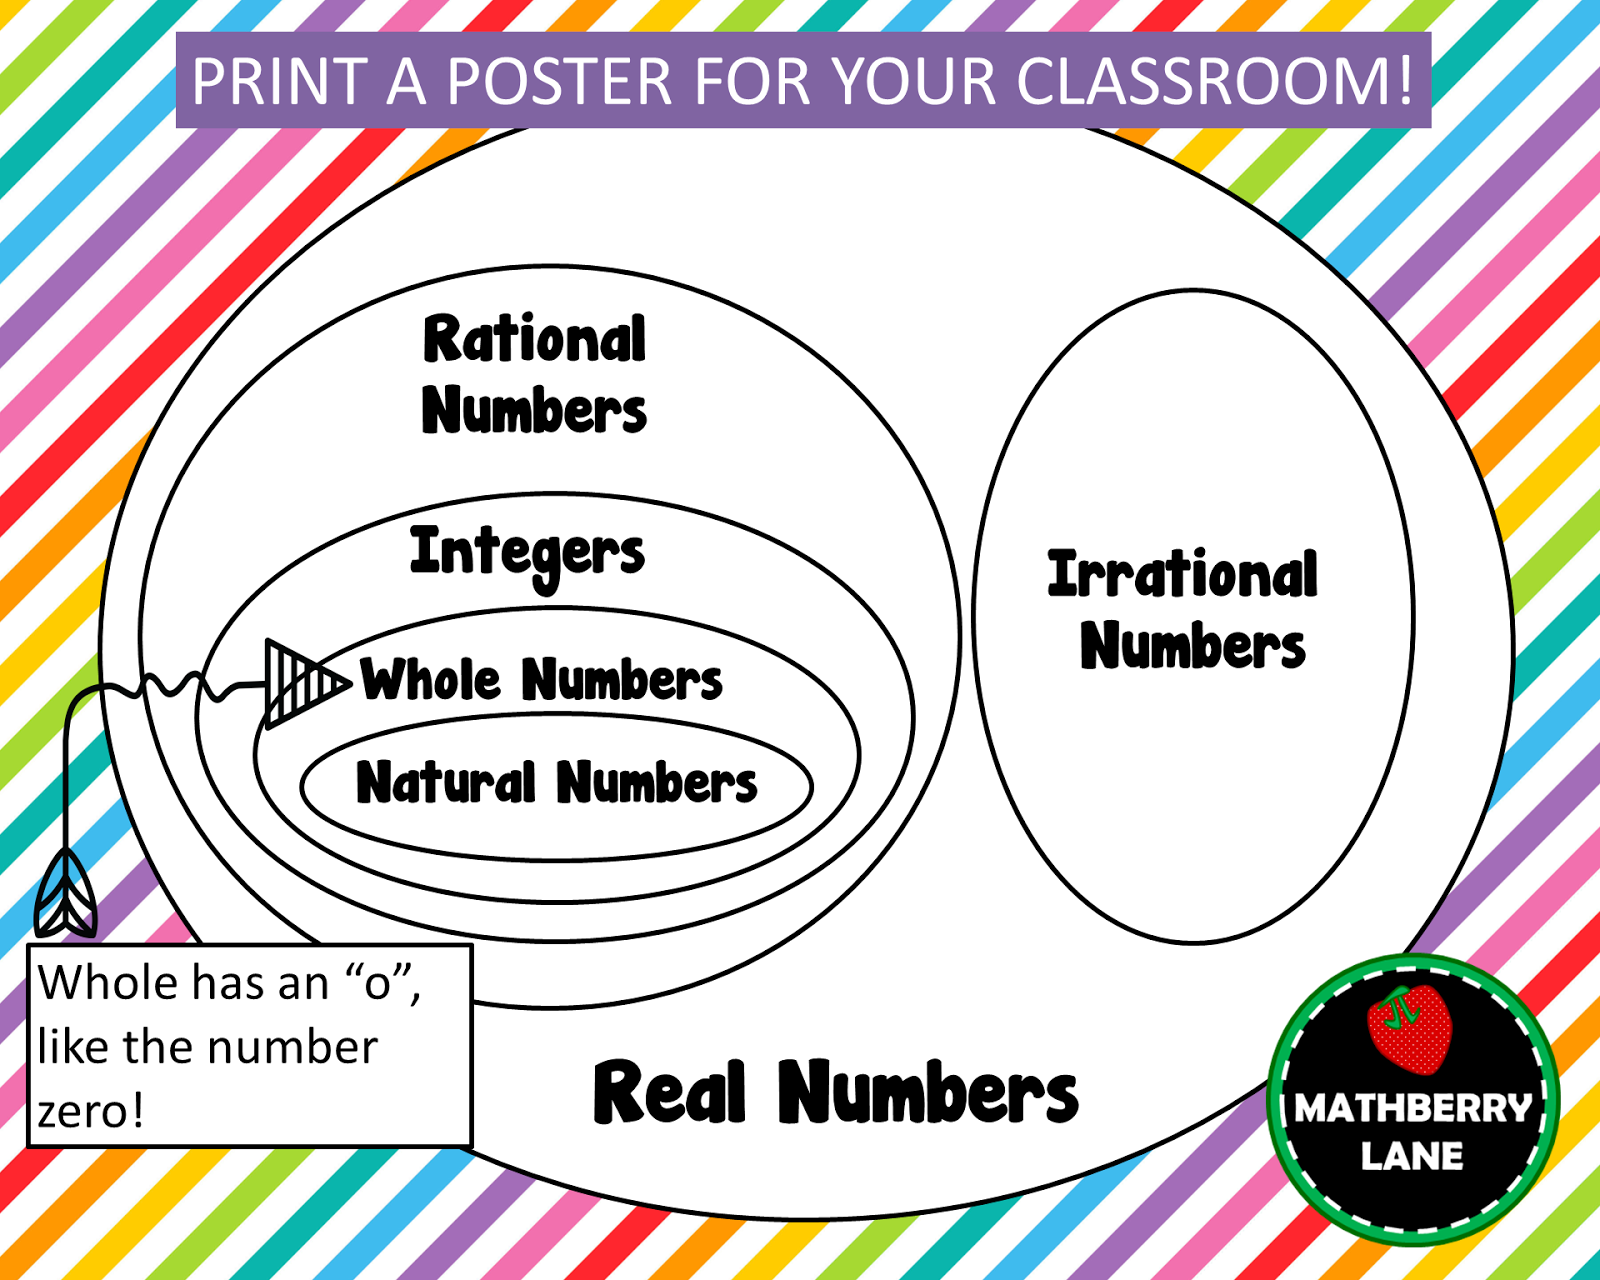 venn diagram for real number system 2001 saturn sl2 stereo wiring numbers poster